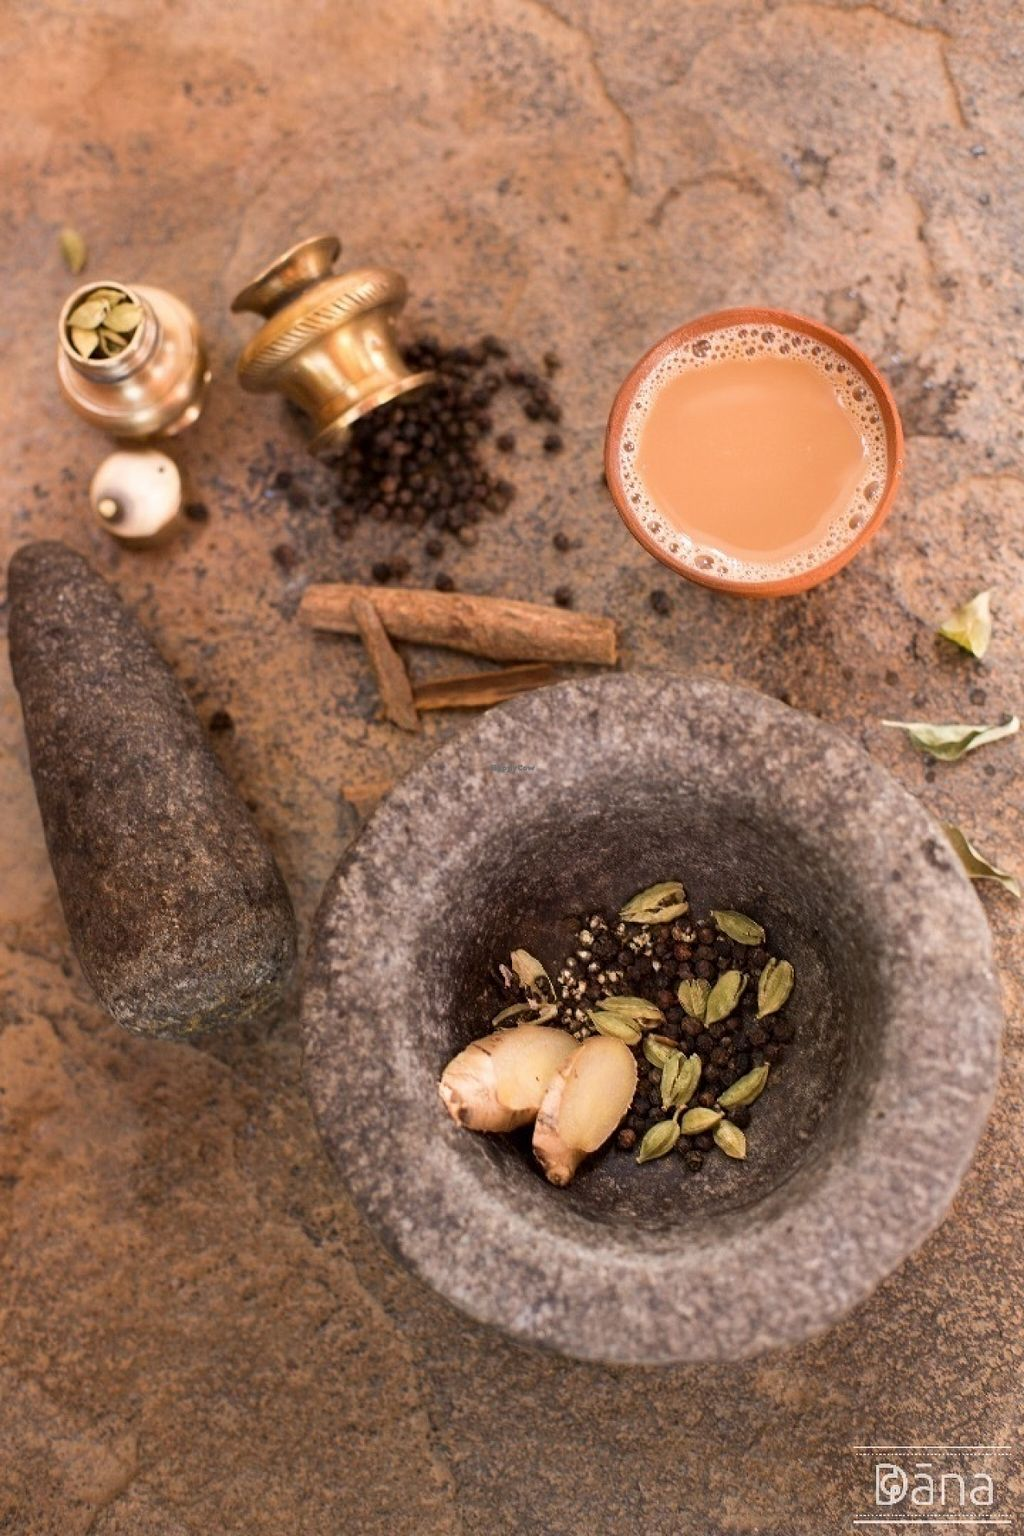 """Photo of CLOSED: Dana  by <a href=""""/members/profile/AvaniChalla"""">AvaniChalla</a> <br/>Real spices in our blend of chai. Vegan option available :) <br/> July 20, 2016  - <a href='/contact/abuse/image/76875/161243'>Report</a>"""